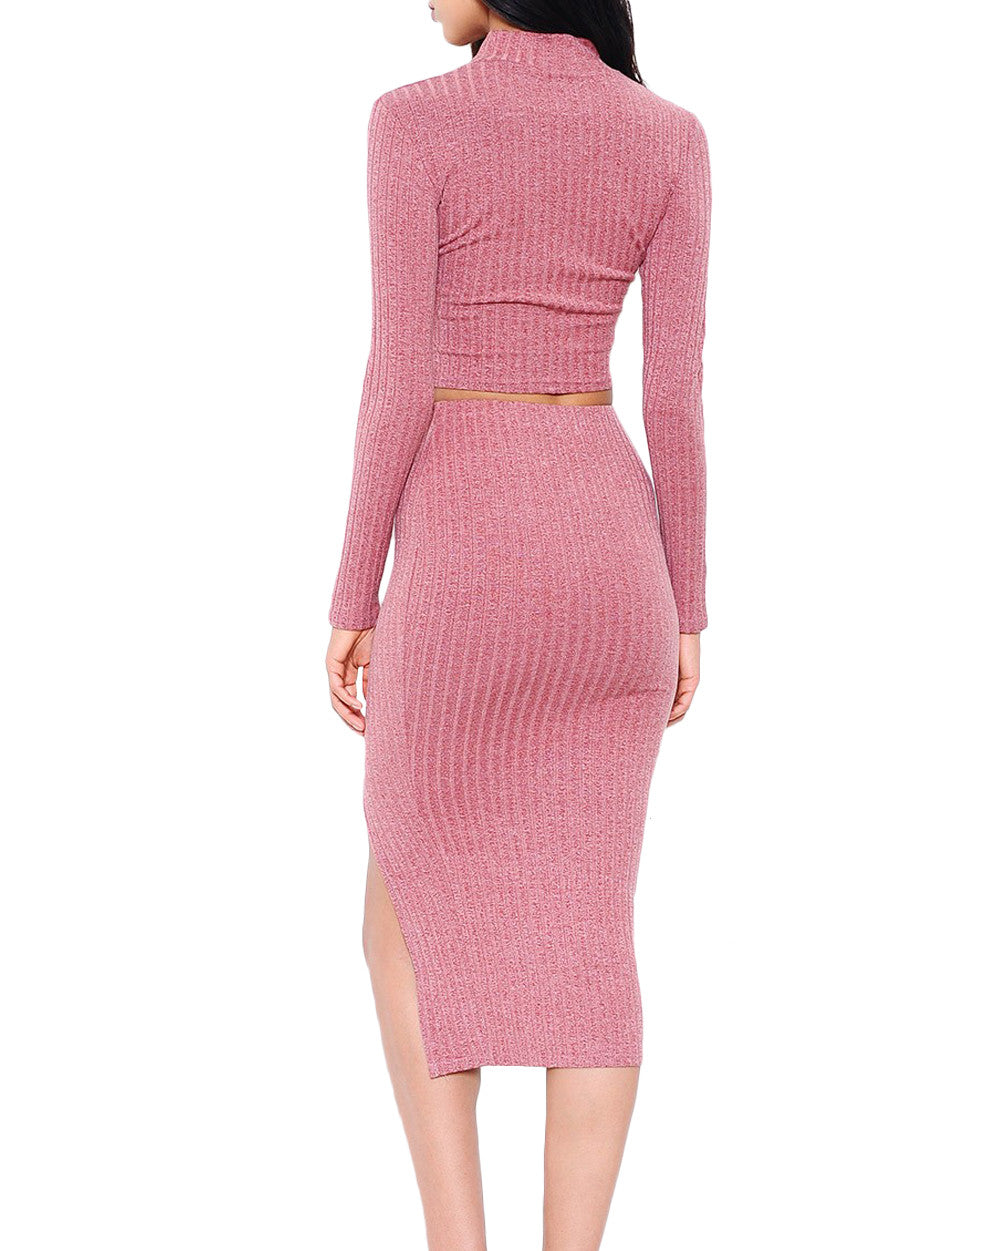 0959377147b4 Ribbed Mock Neck Knit Two-Piece Midi Dress - The Shopping Bag